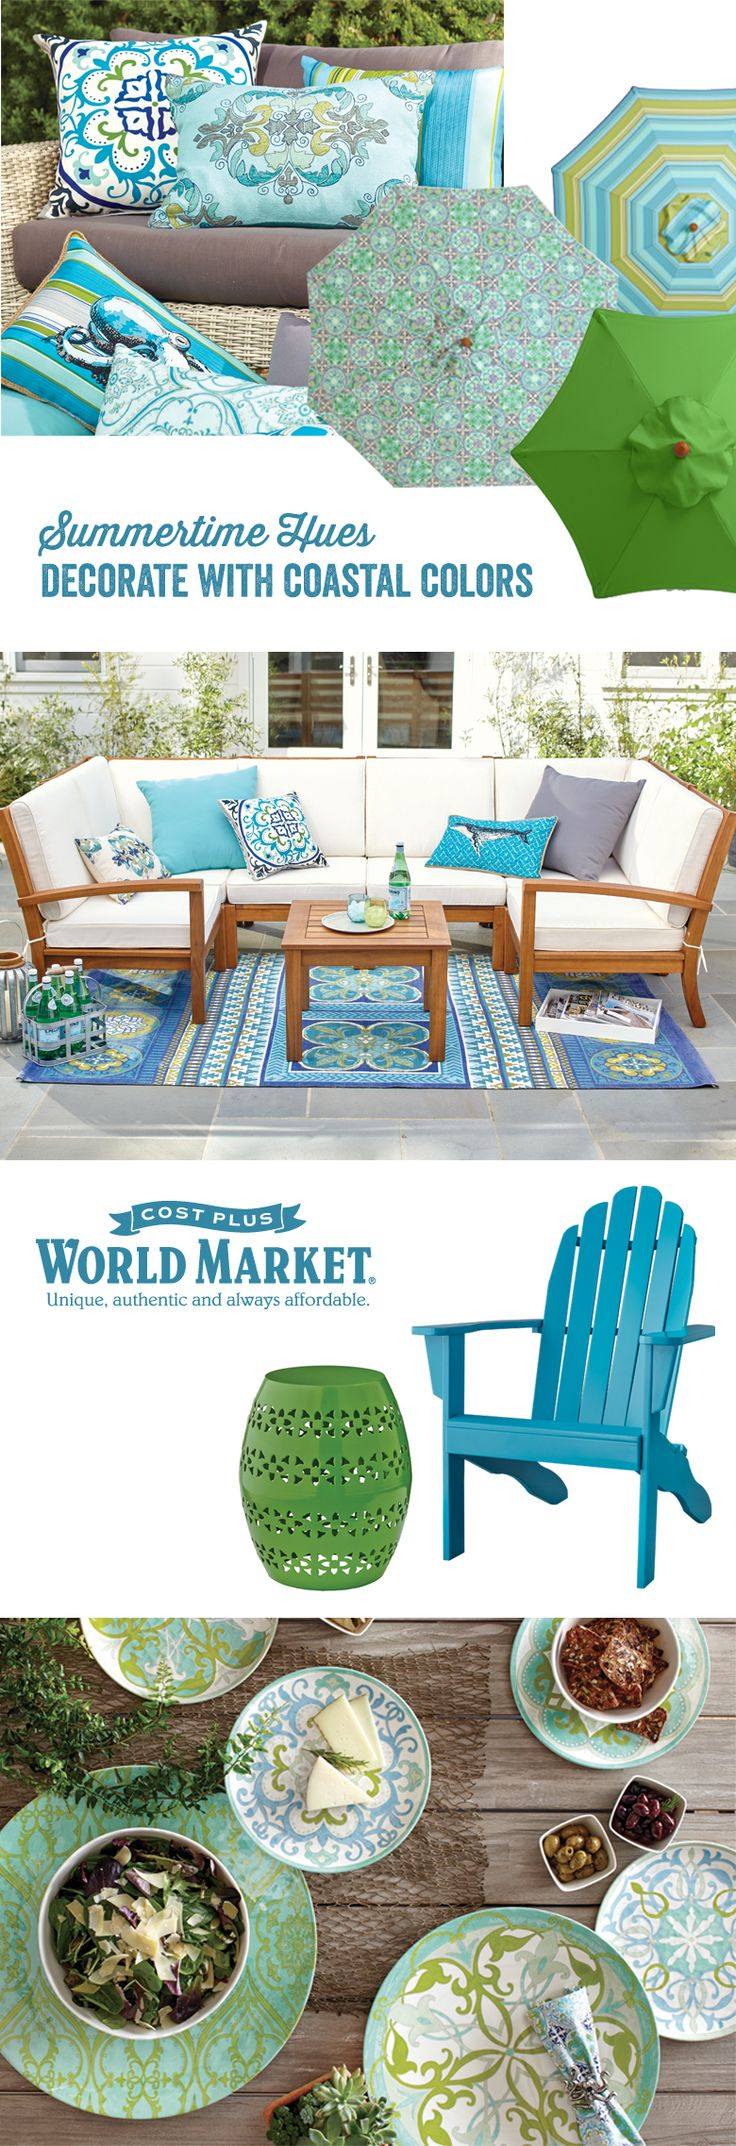 With our Seaside Modern Collection it's easy and affordable to create your own outdoor oasis surrounded by the calming colors of the deep blue sea. #WorldMarket #CelebrateOutodoors